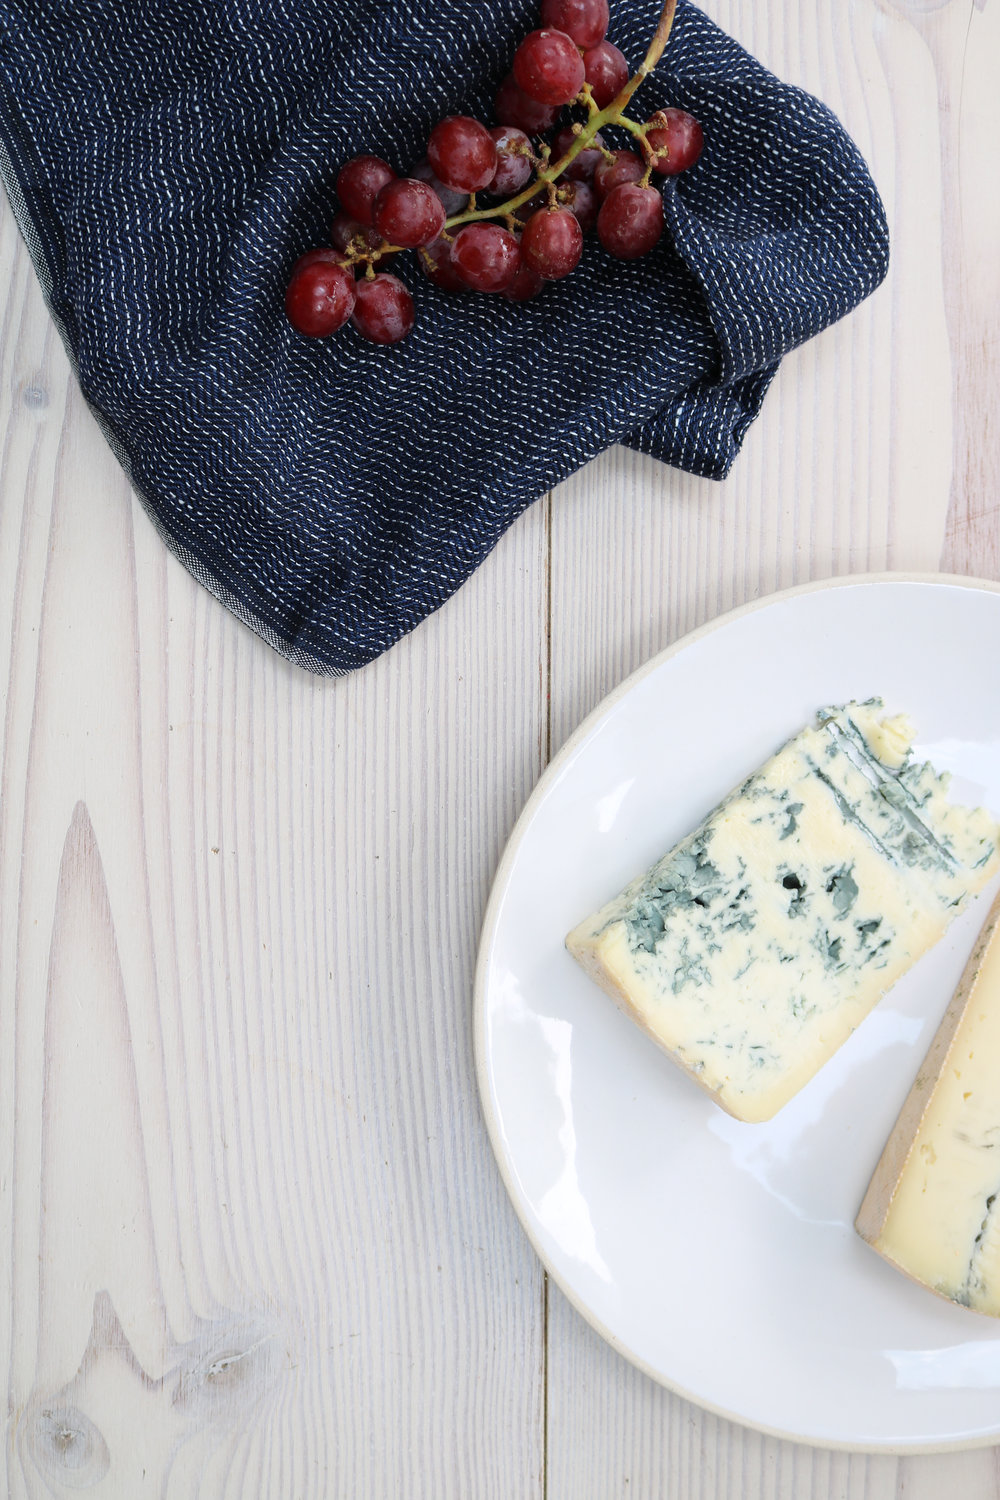 Gorgonzola and grapes on a wooden table | London Lifestyle Photoshoot | Creative Direction